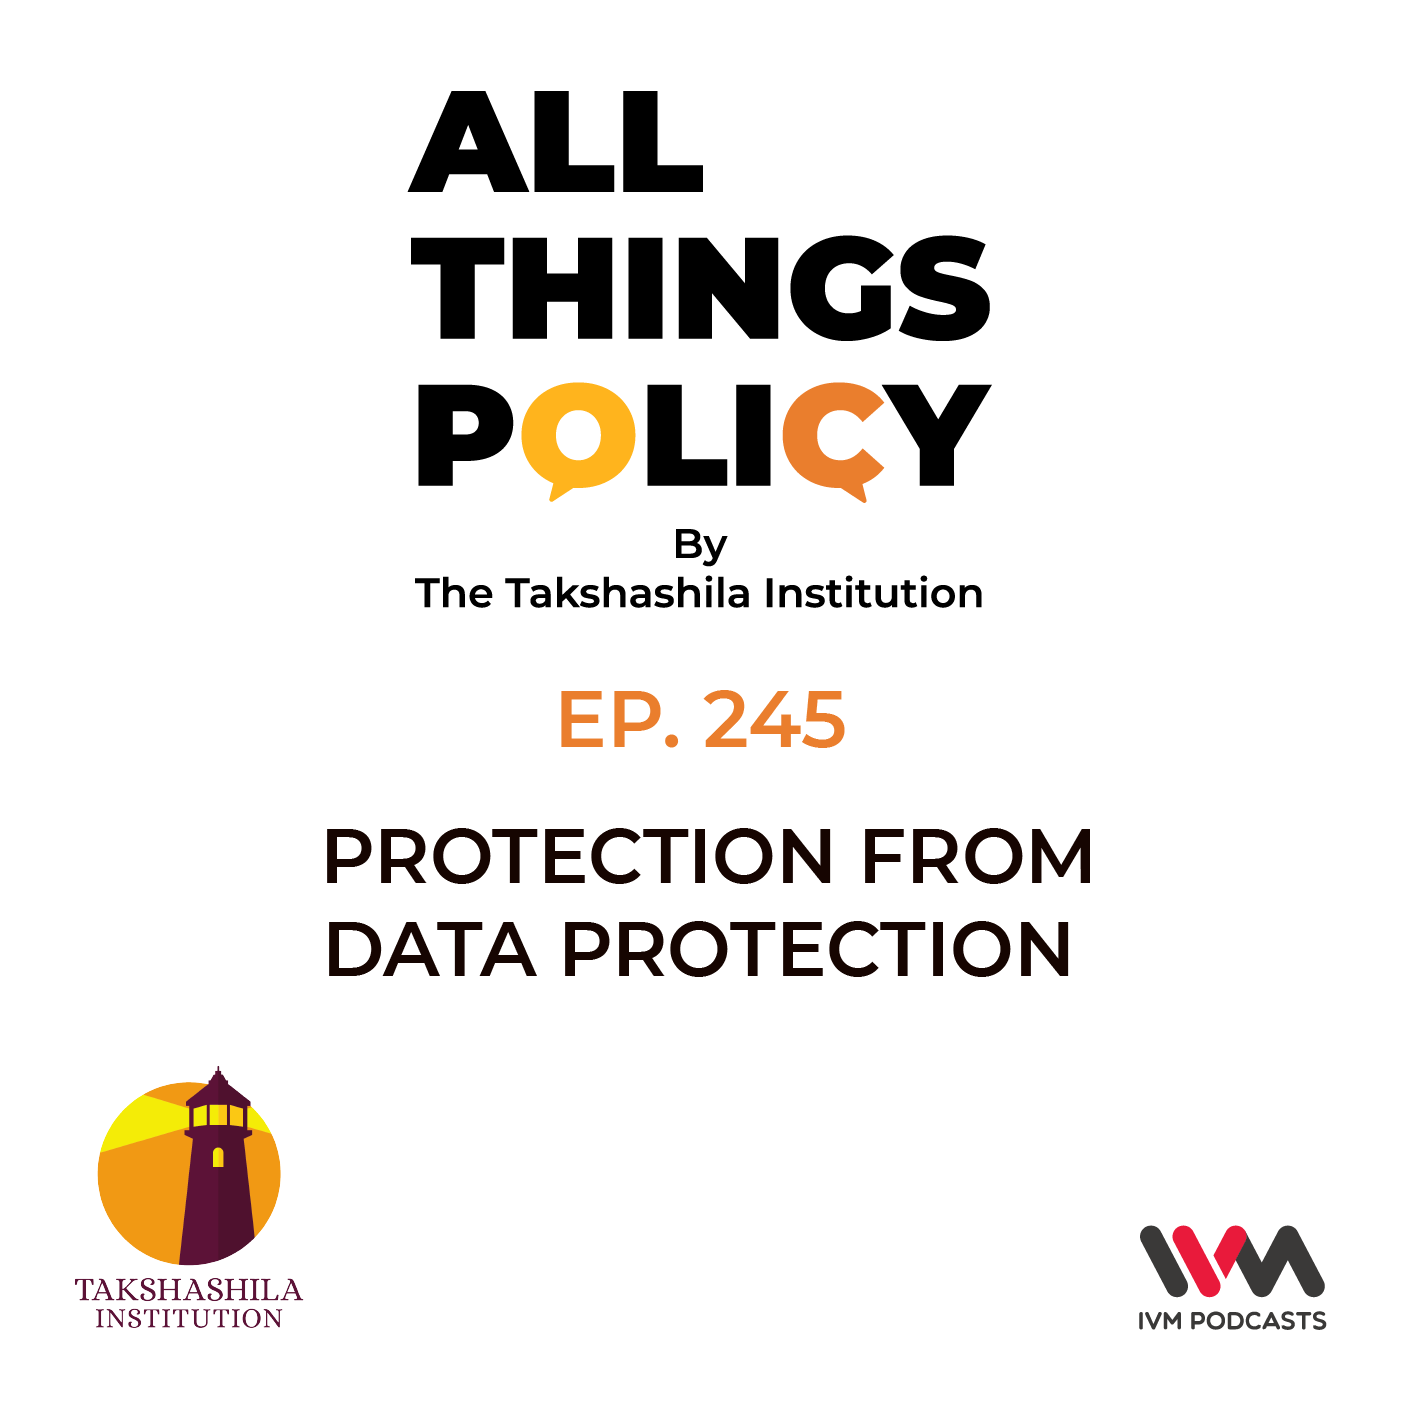 Ep. 245: Protection from Data Protection